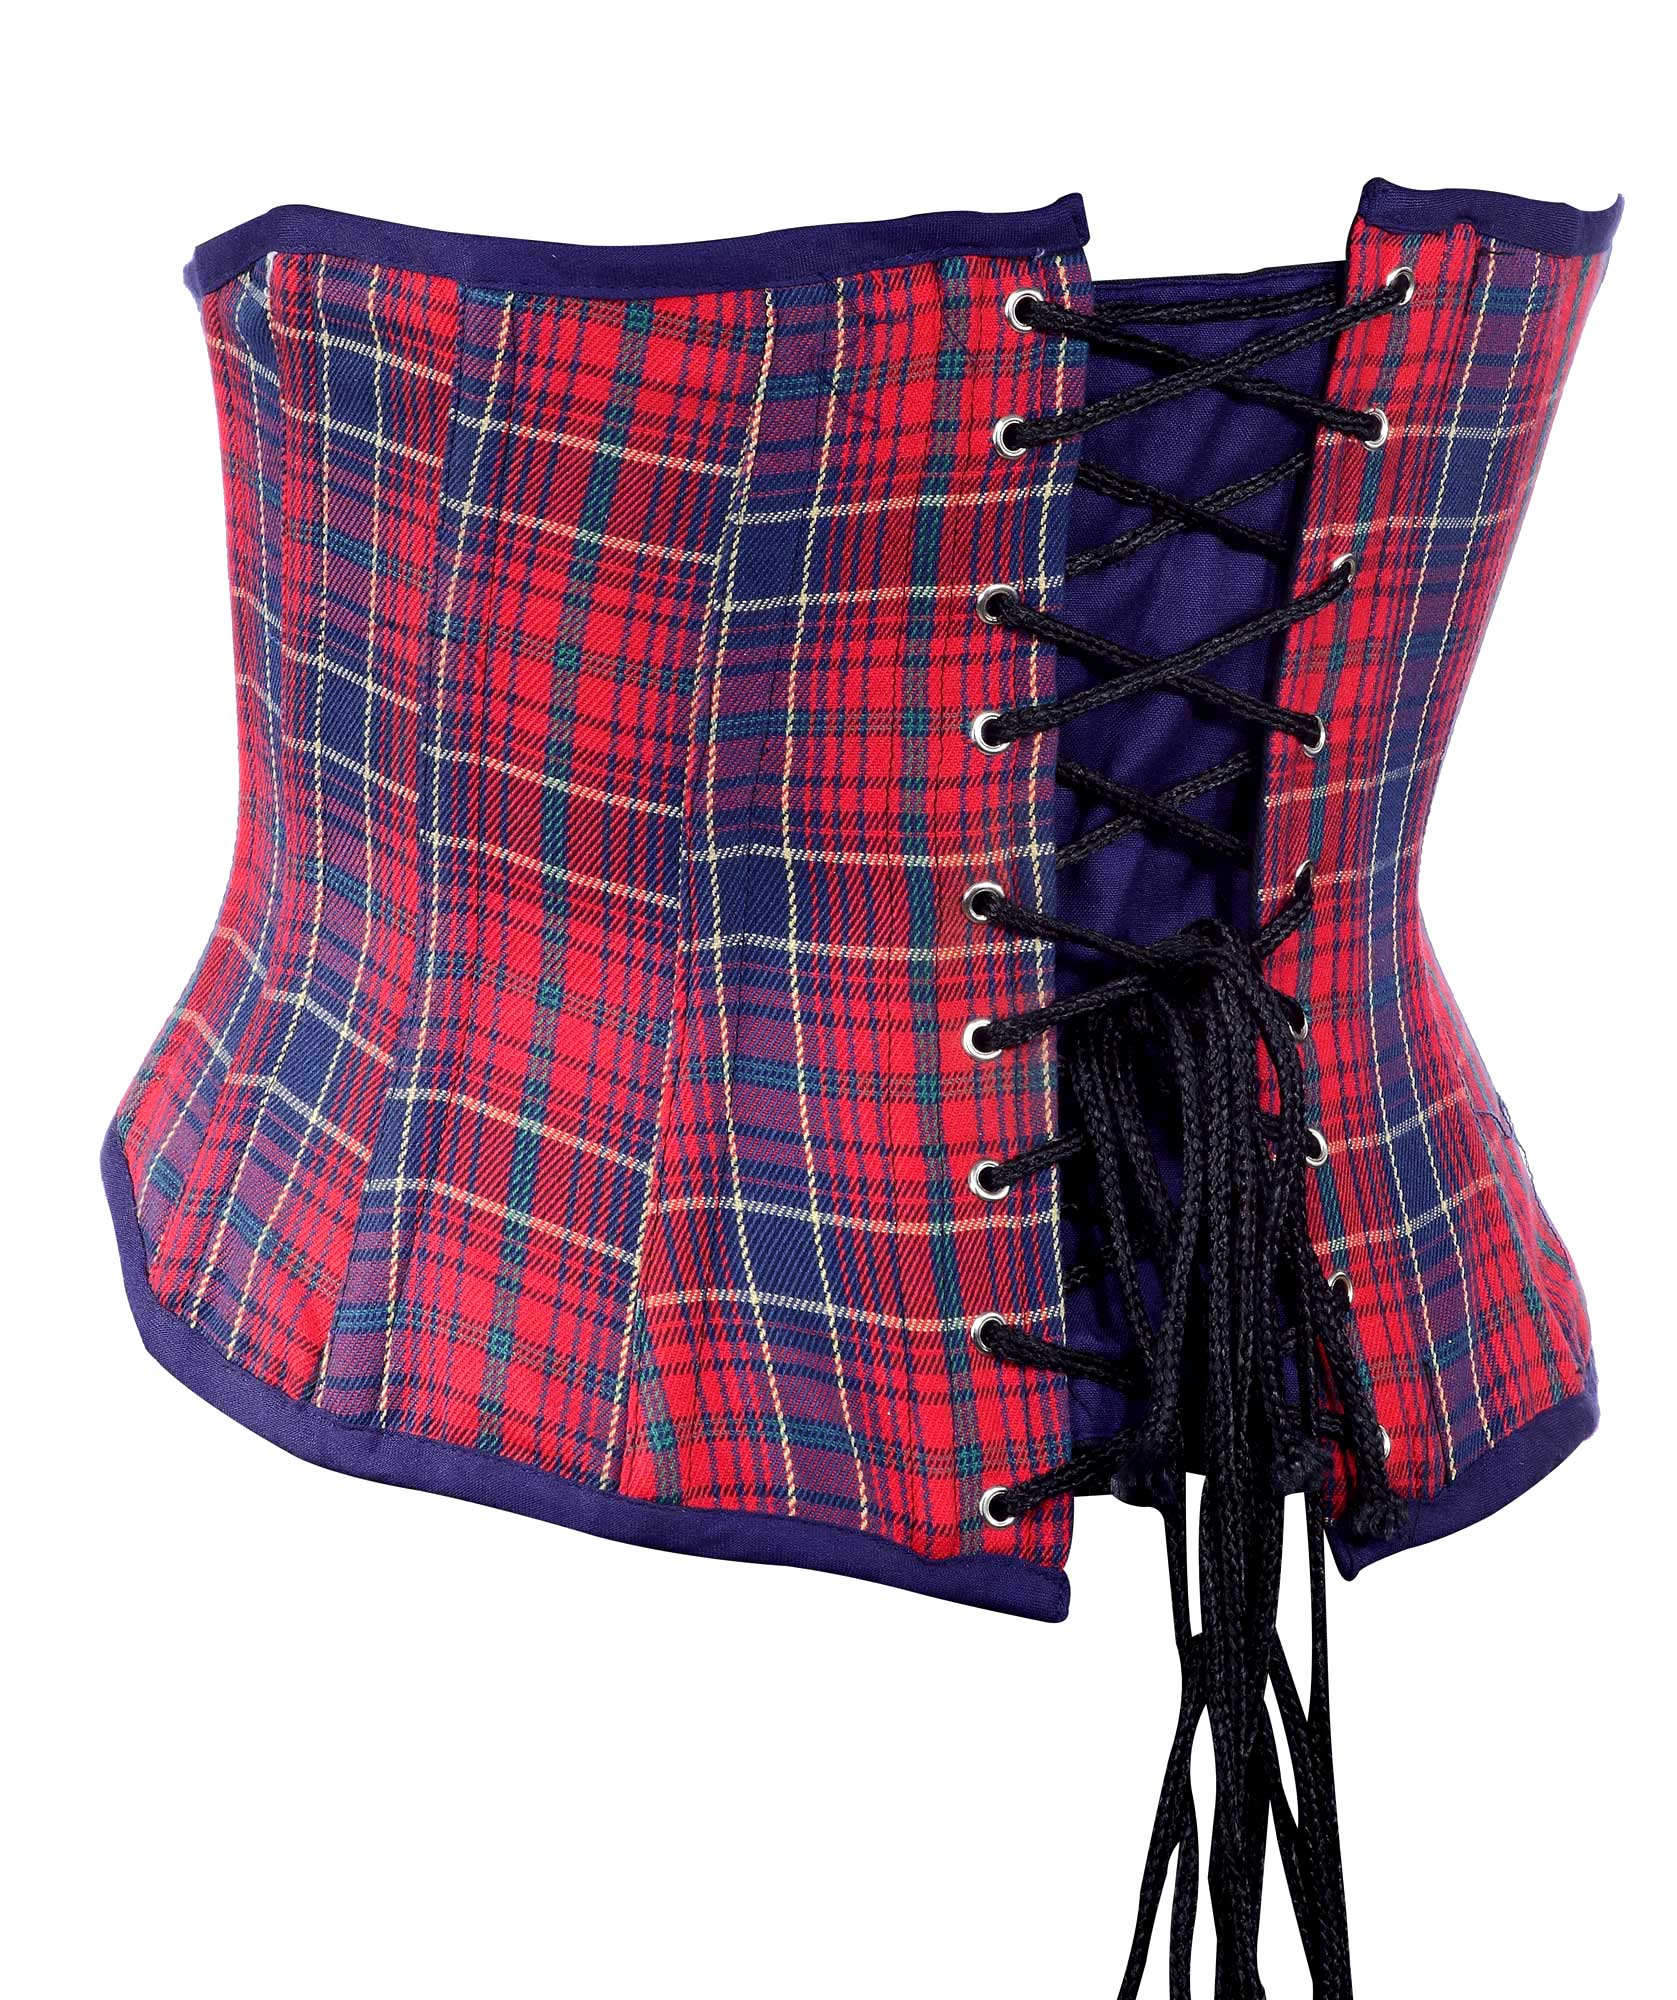 red_and_blue_check_fabric_steel_boning_underbust_corset_waist_cincher_bustier_bustiers_and_corsets_3.jpg